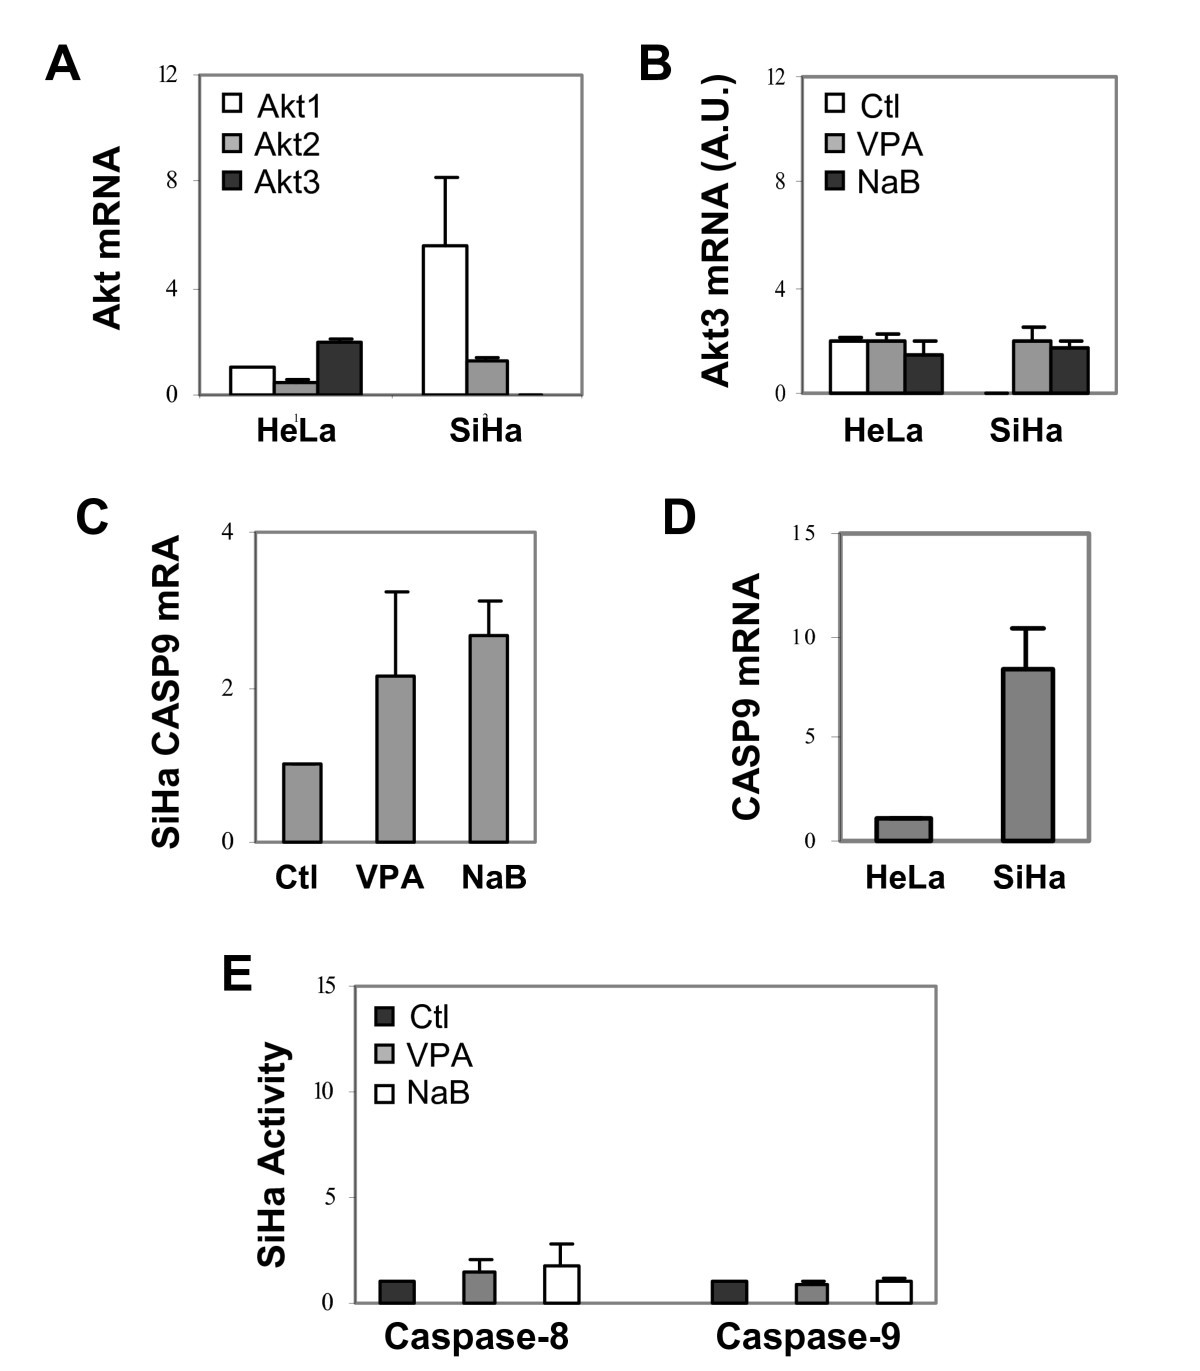 Valproic Acid And Butyrate Induce Apoptosis In Human Cancer Cells Kc 135 Engineering Schematics Figure 6